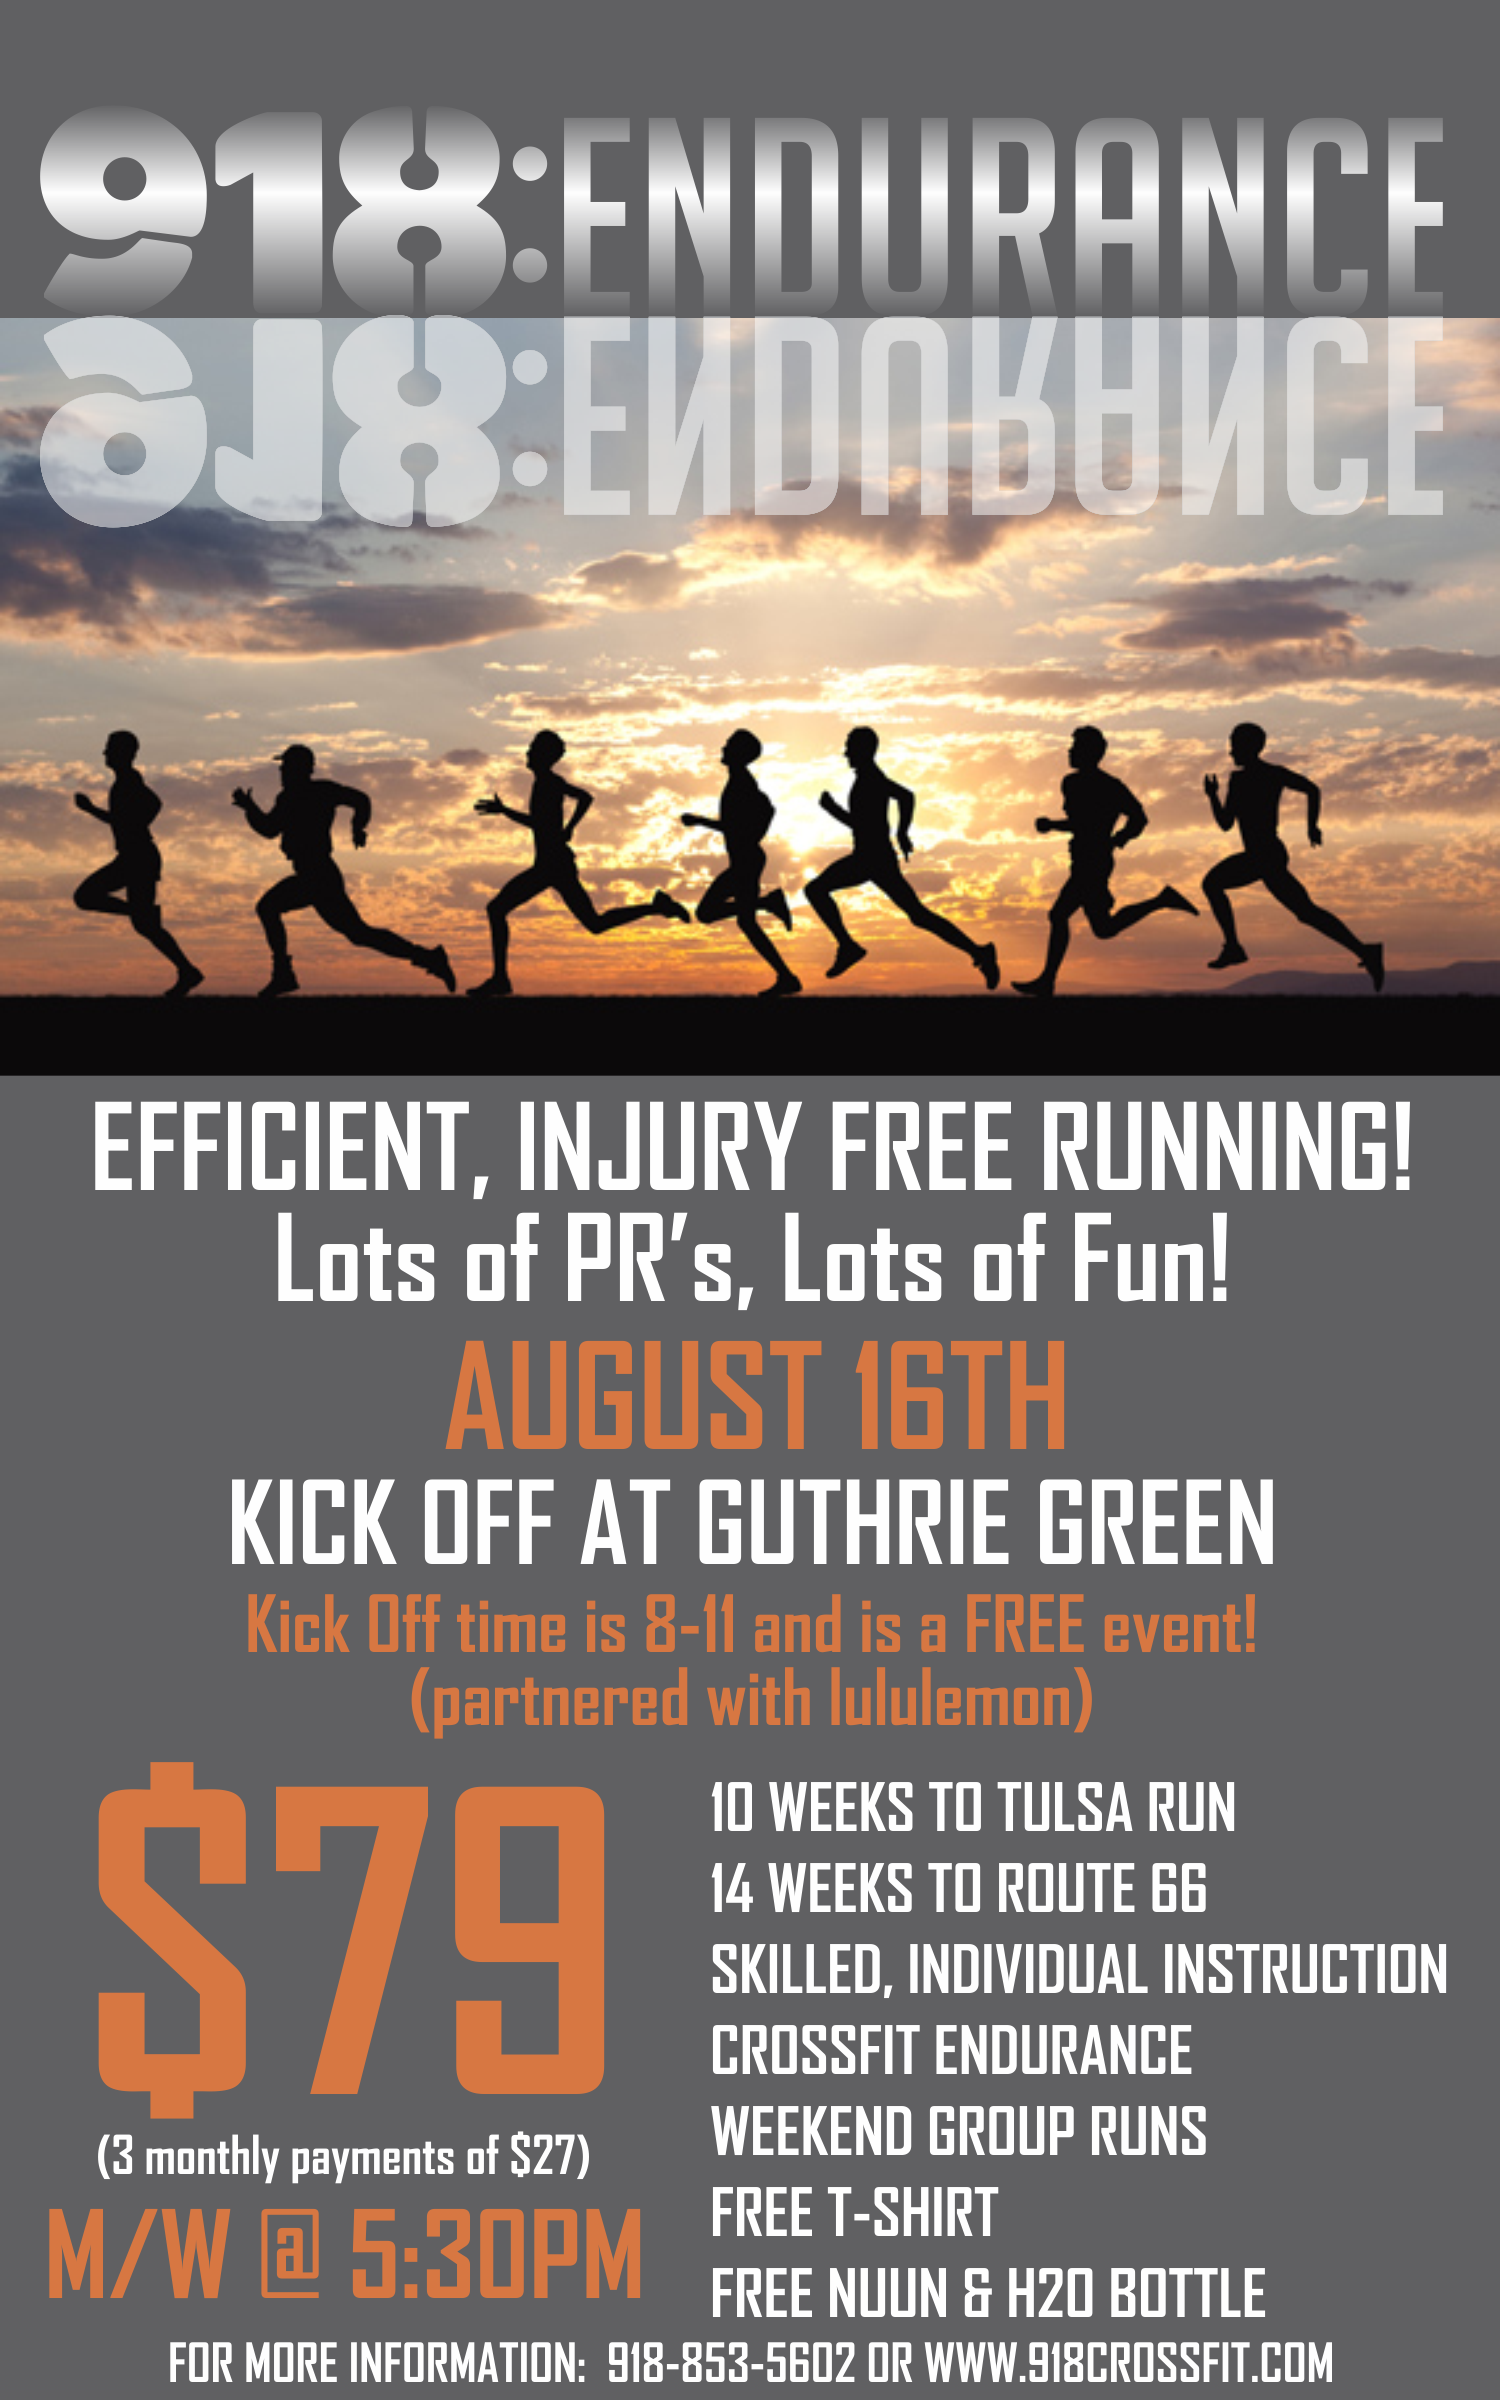 918Endurance Flyer 8-13-14.png